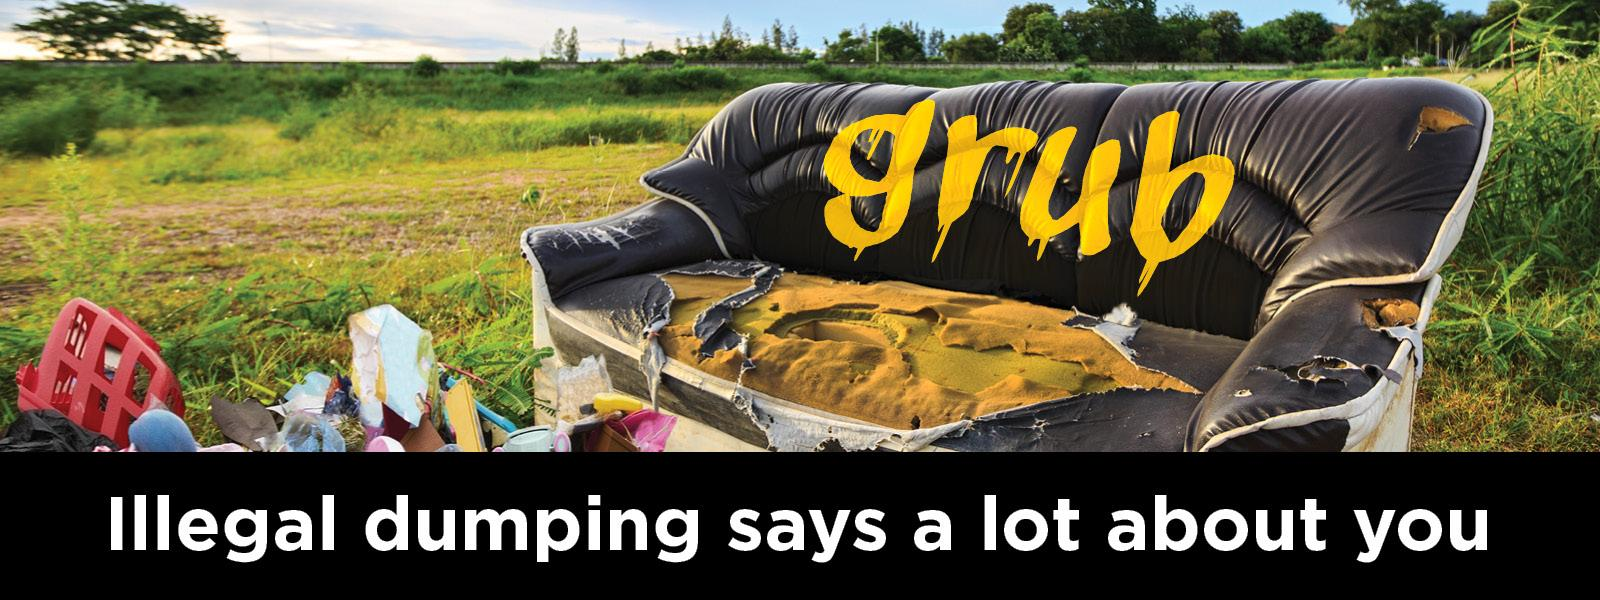 Illegal dumping says a lot about you.